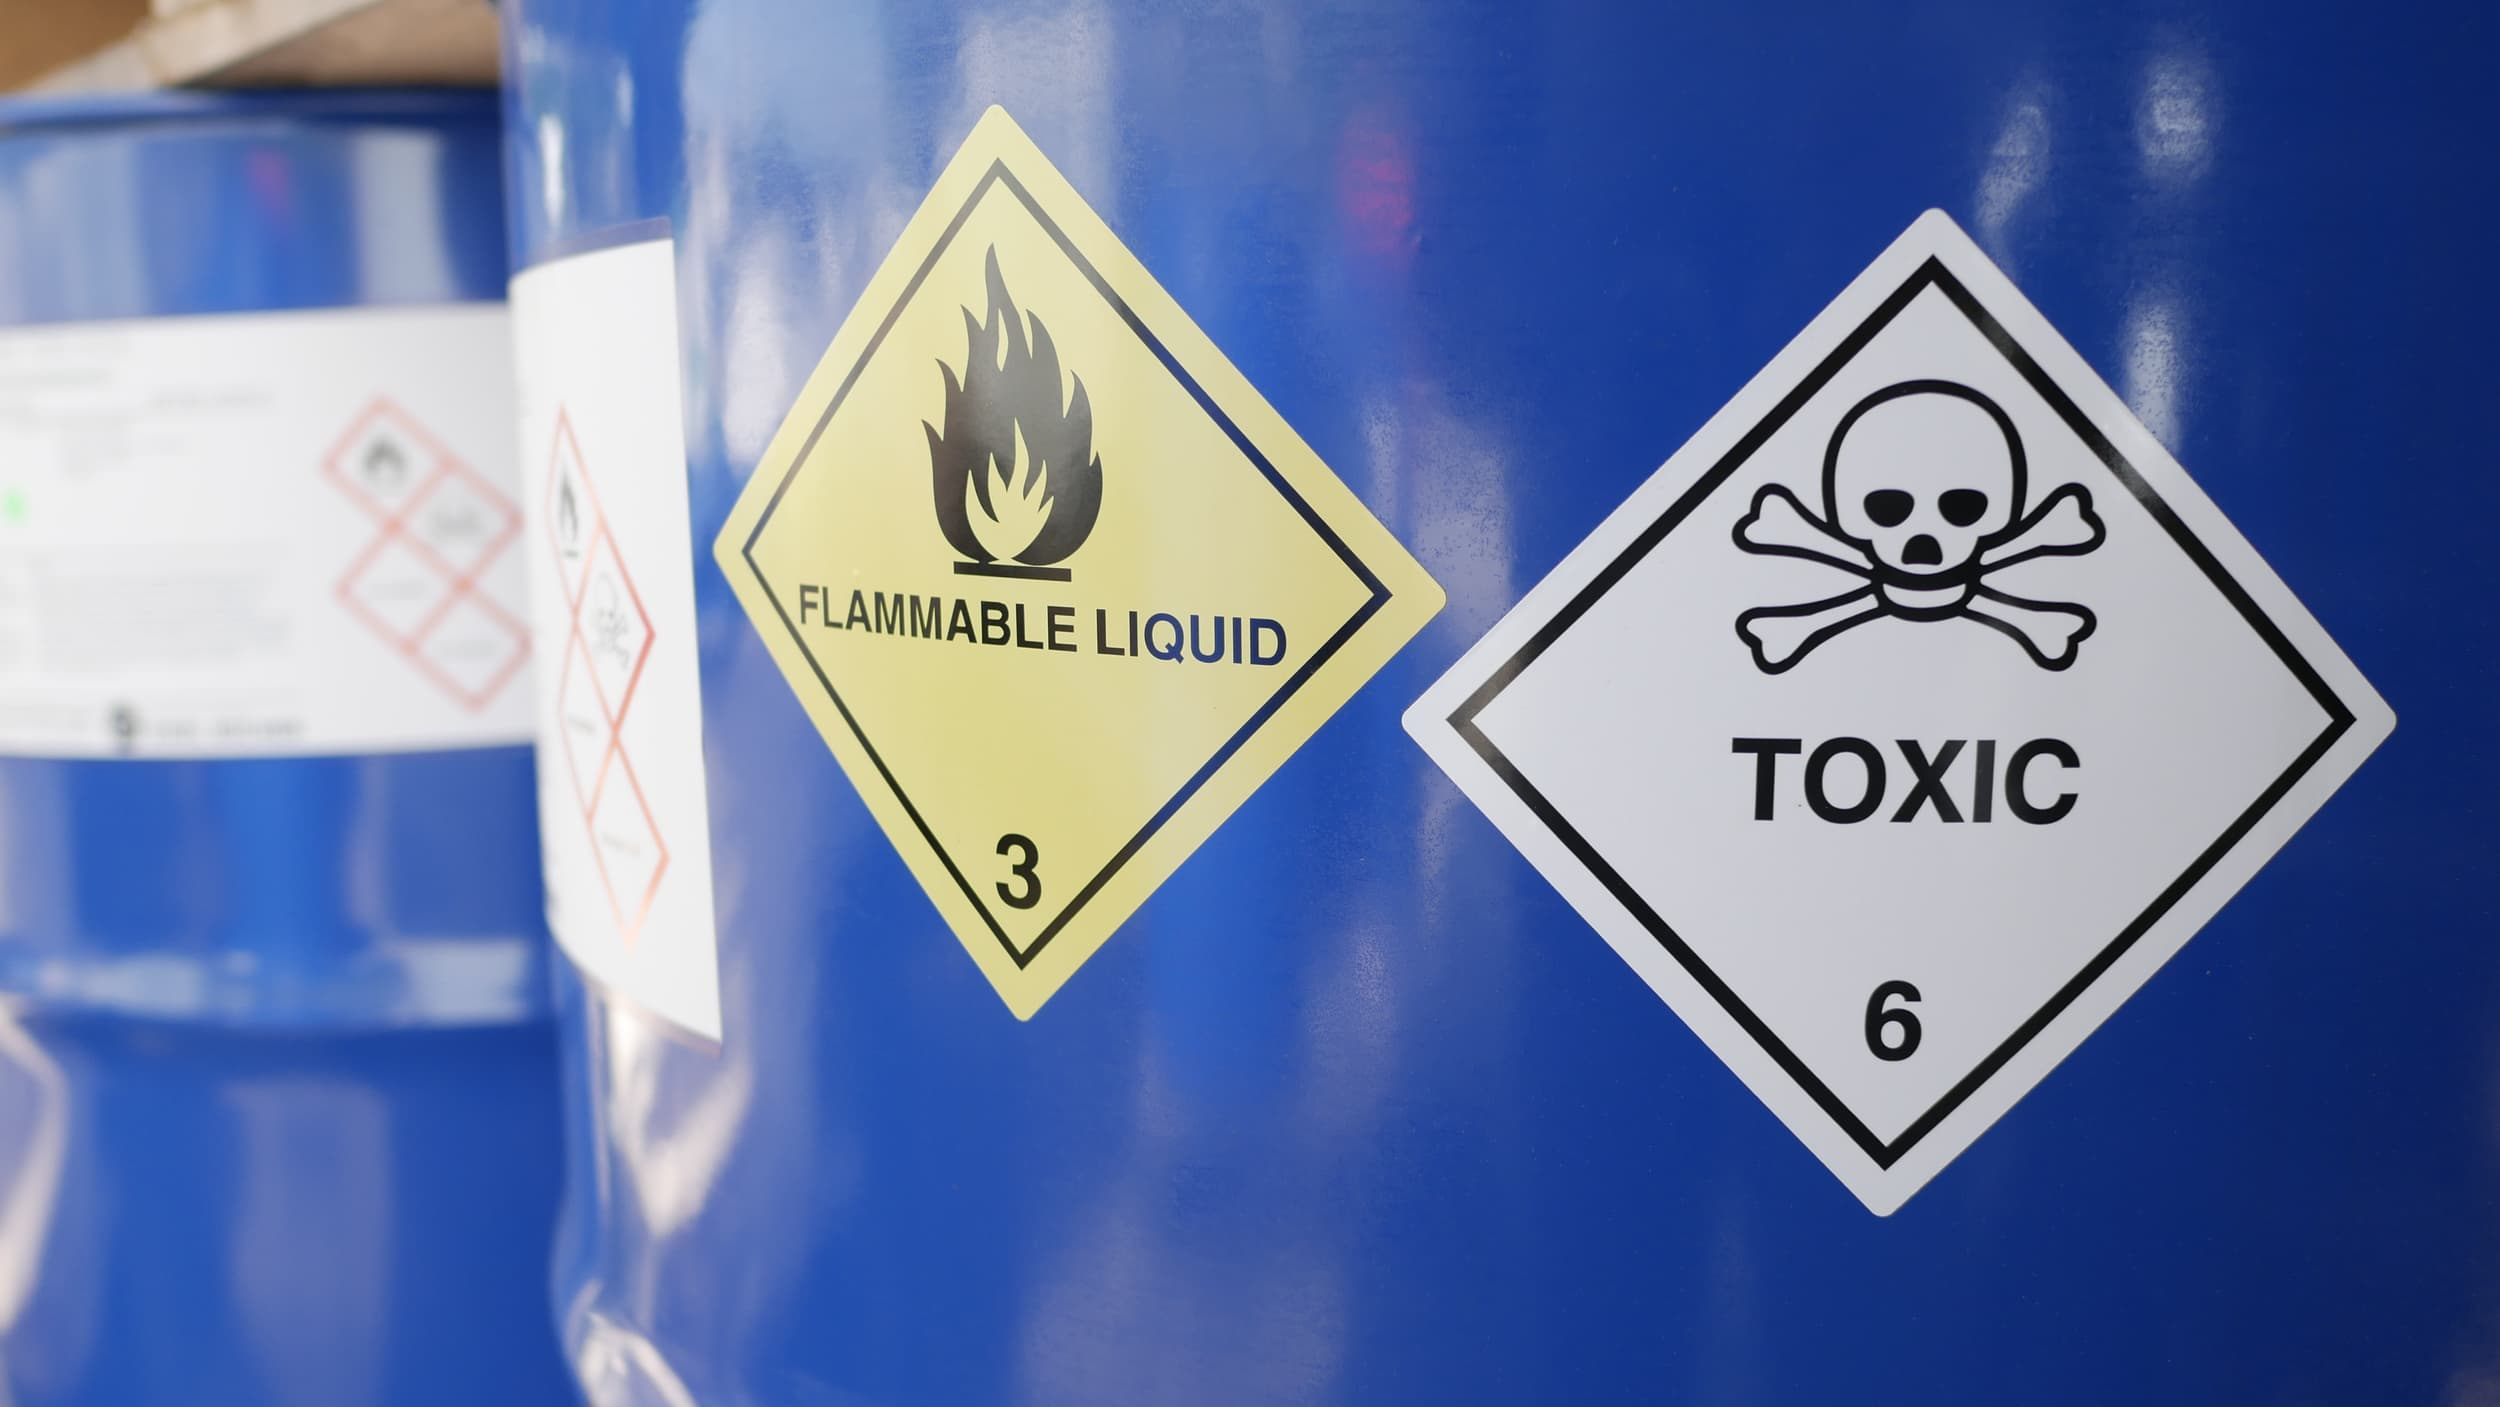 Compliance Training Online Industrial Chemical Hazards & Toxic Substances course